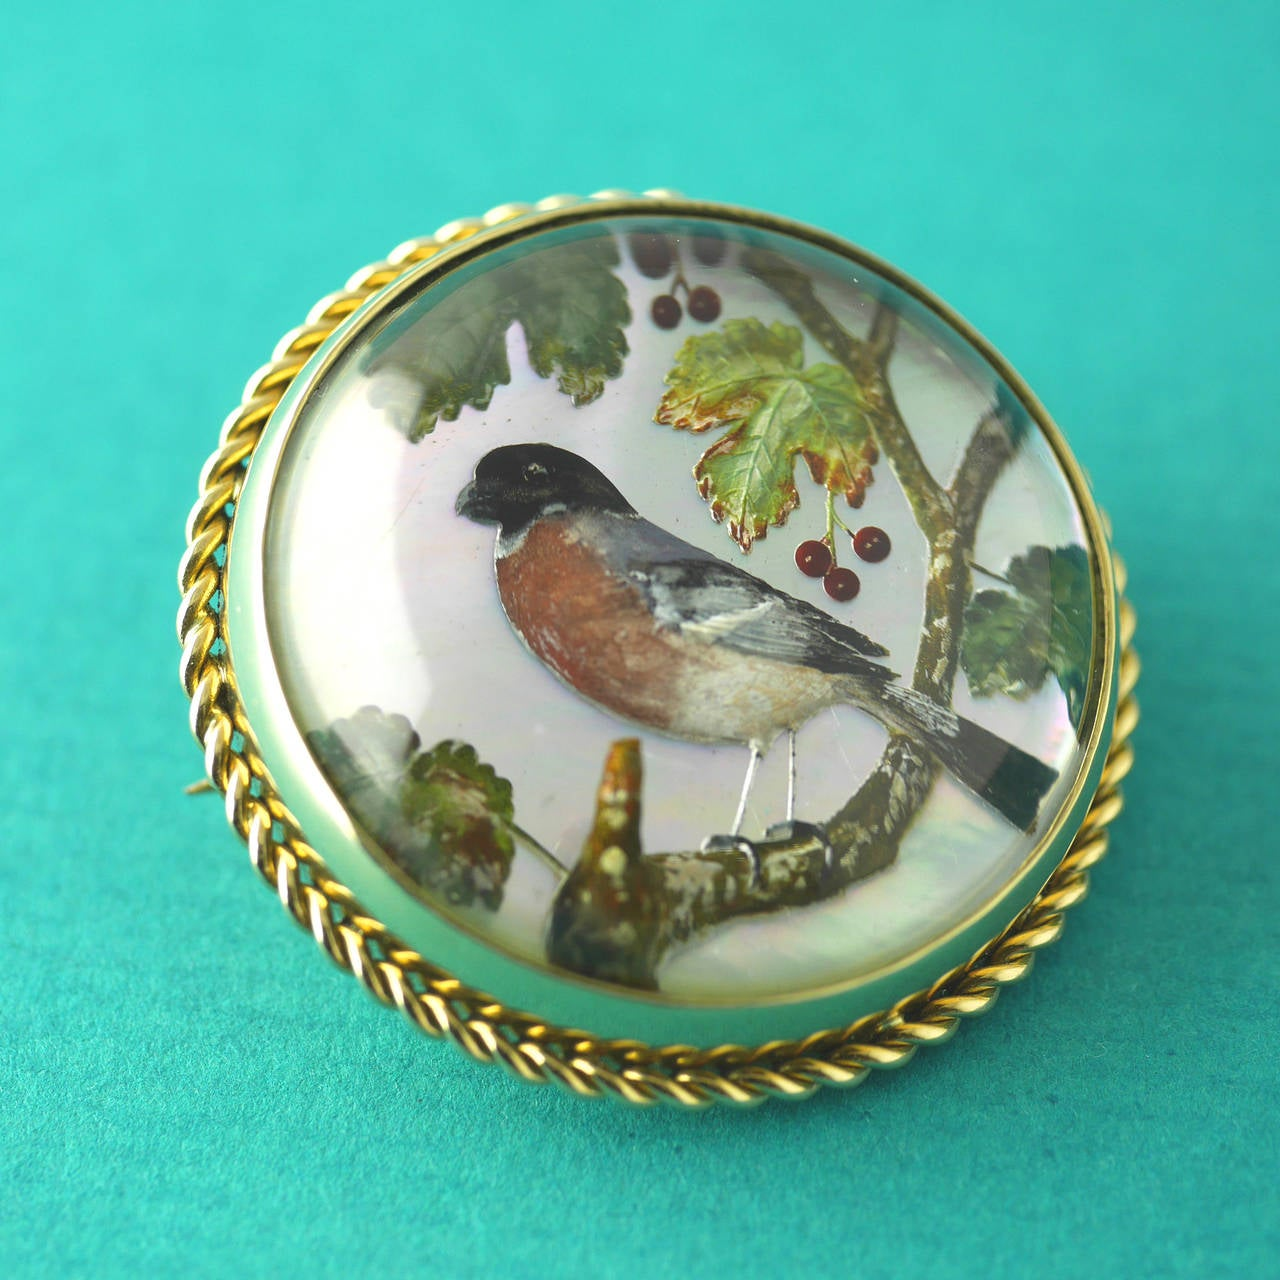 Essex crystal carved and painted showing a bird upon a cherry tree branch. Set on a mother of pearl background in 18kt gold. 